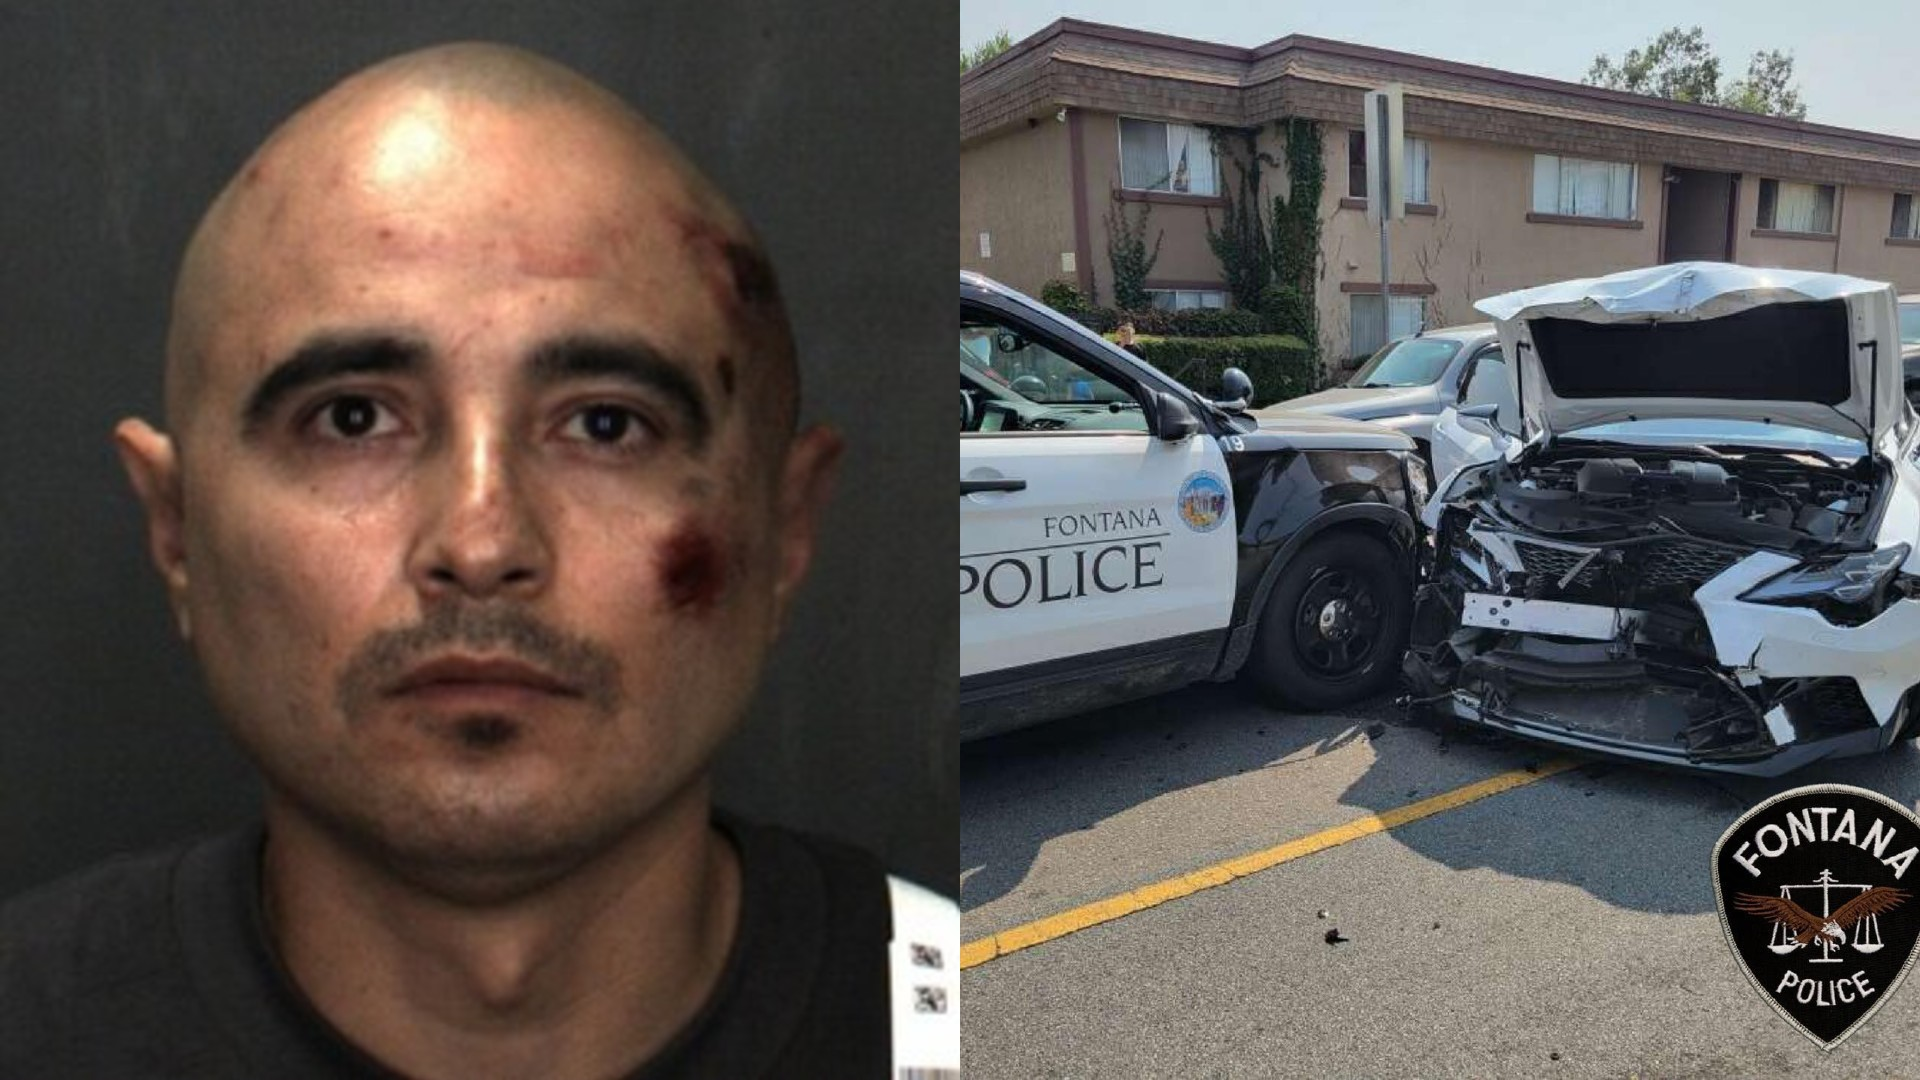 Fontana police released this photo of Juan Guzman, left, and the crash scene, right.